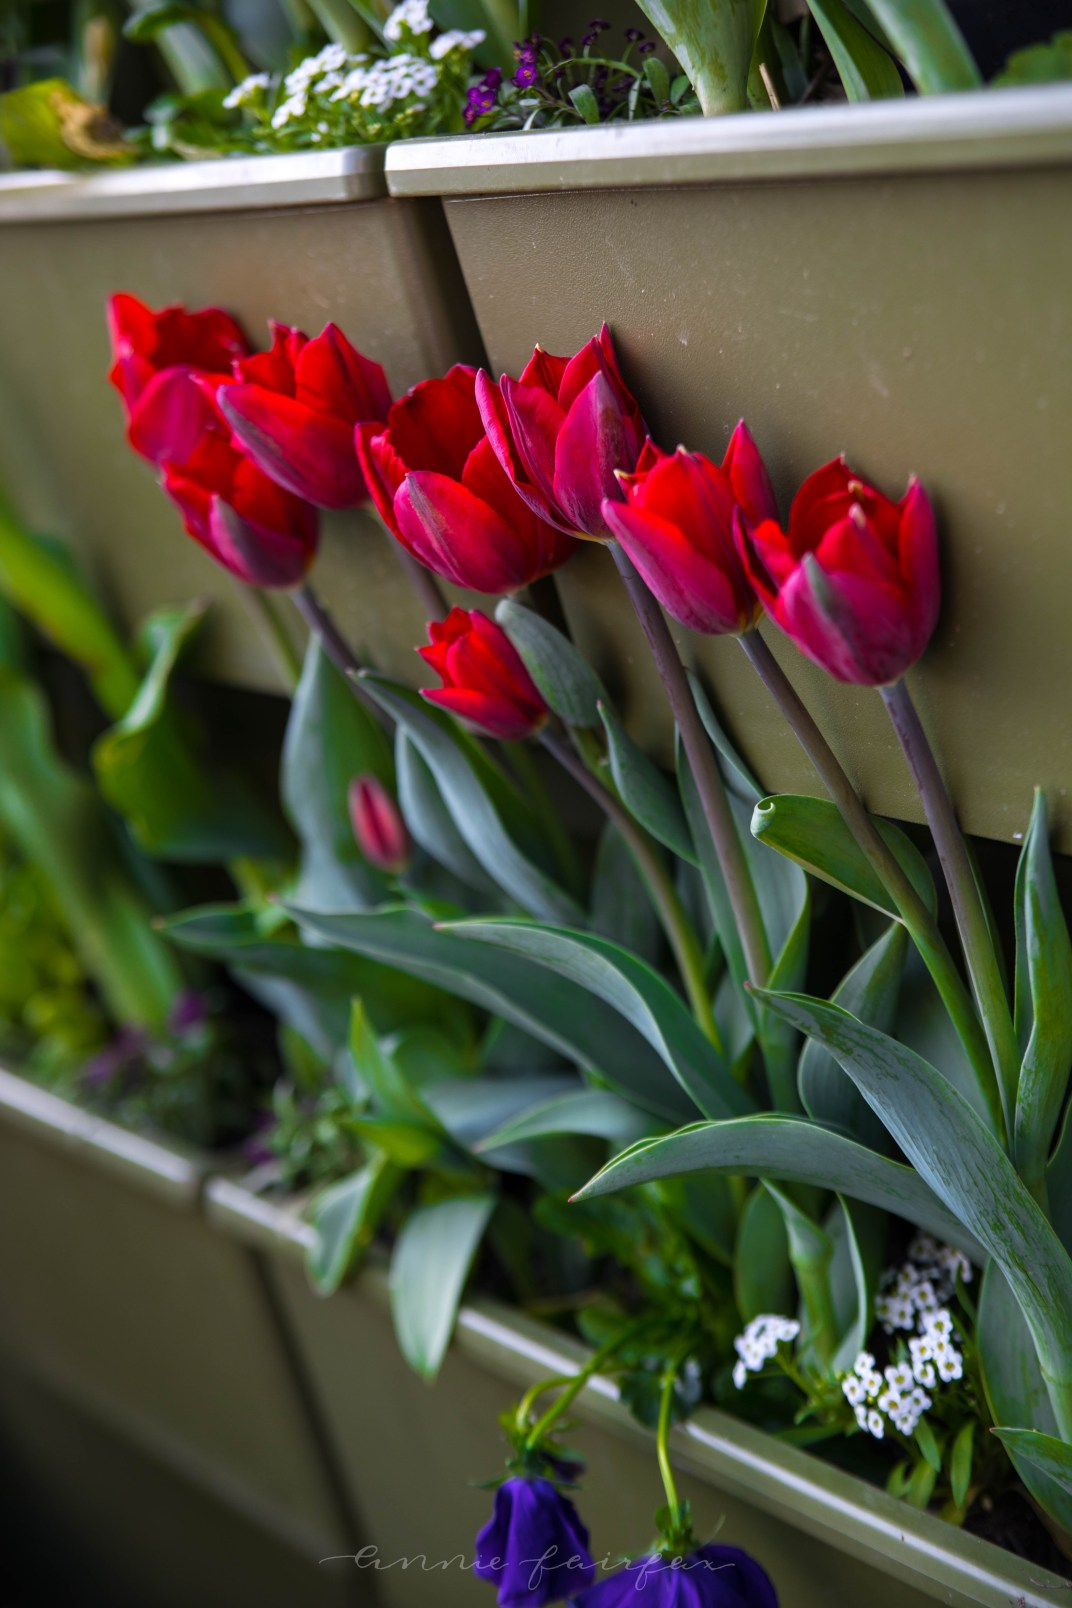 The Official Guide to Tulip Time Festival in Holland - Annie